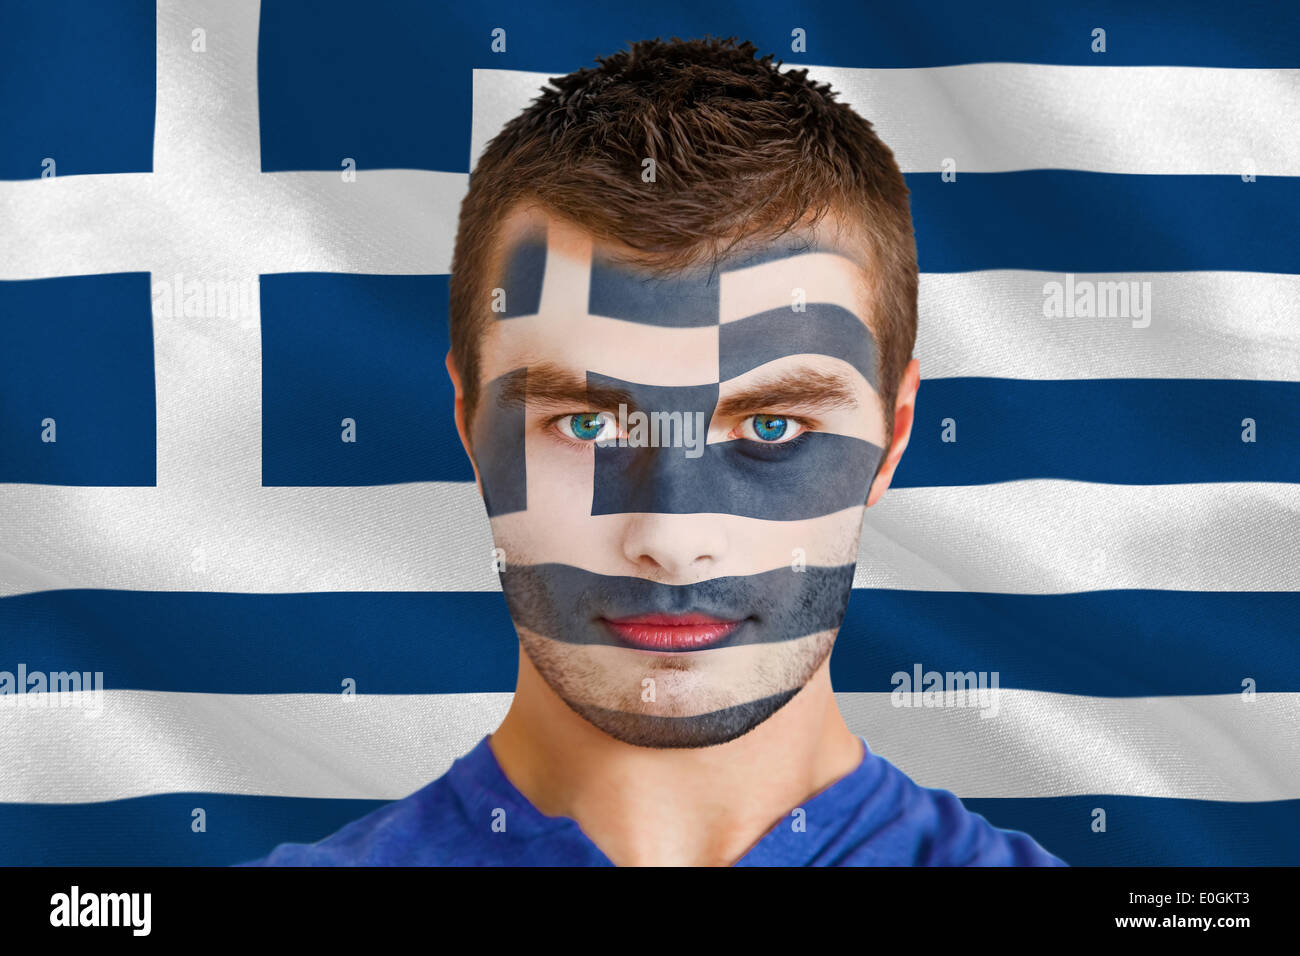 Serious young greece fan with facepaint - Stock Image